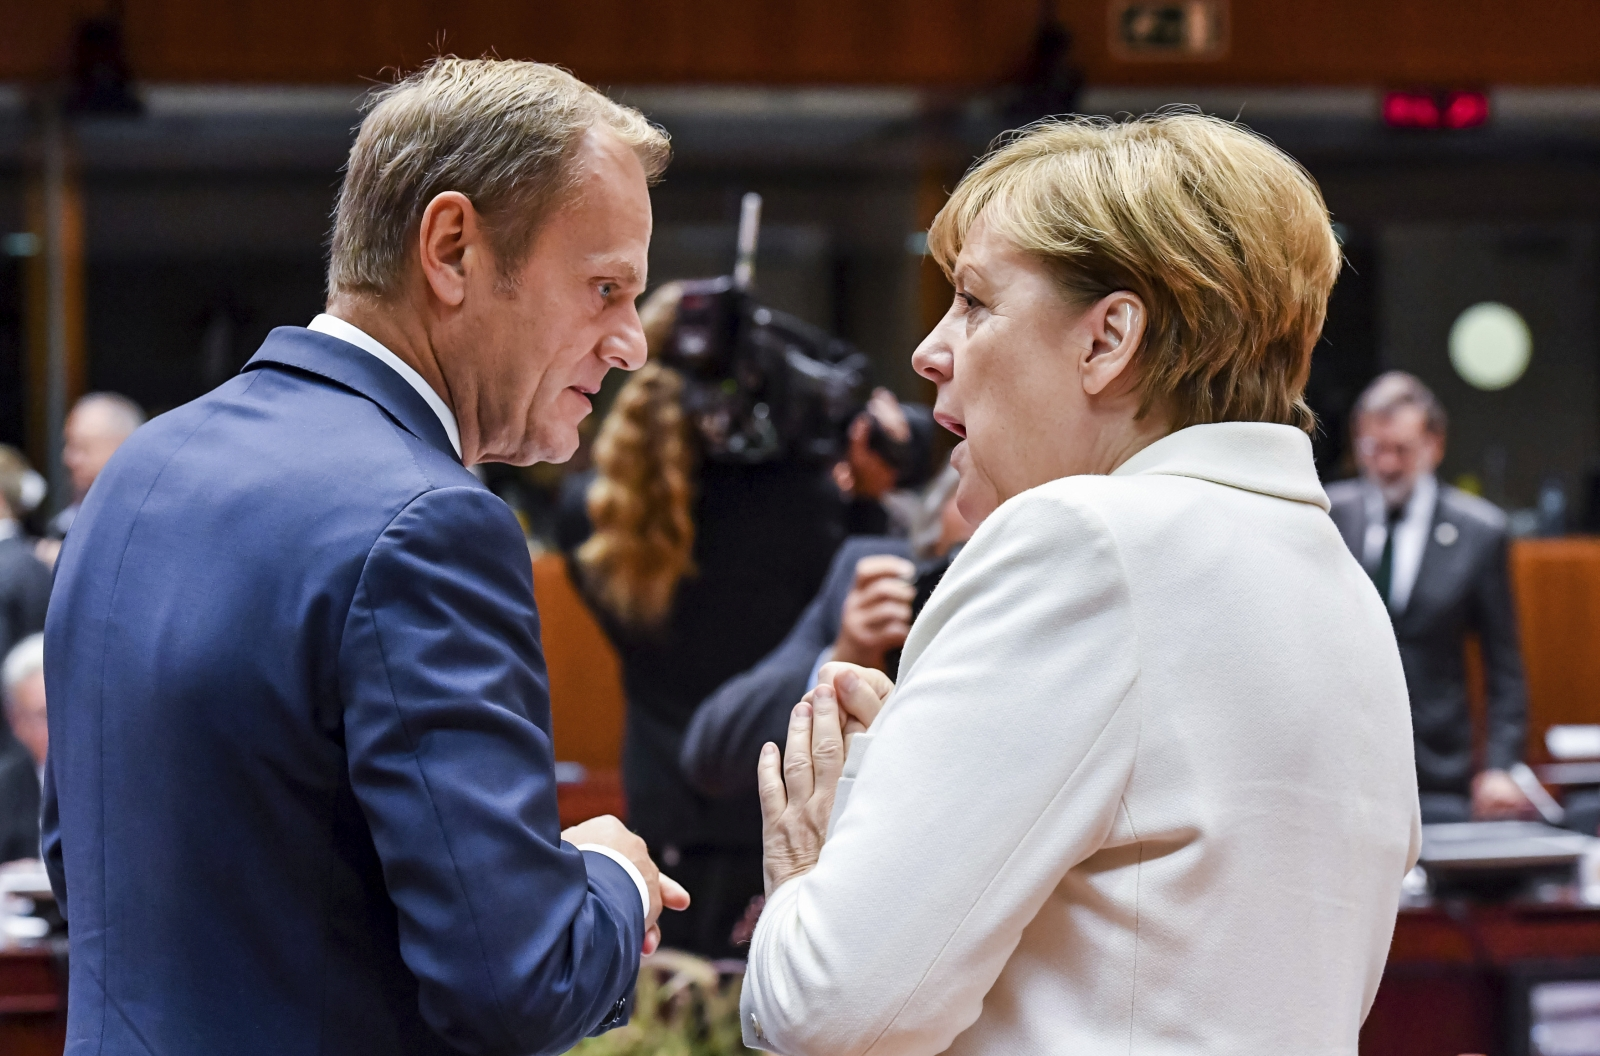 German Chancellor Angela Merkel, right, speaks with European Council President Donald Tusk during a round table meeting at an EU summit in Brussels on Friday, Oct. 20, 2017. European Union leaders gathered Friday to weigh progress in negotiations on Britain's departure from their club as they look for new ways to speed up the painfully slow moving process. (AP Photo/Geert Vanden Wijngaert)